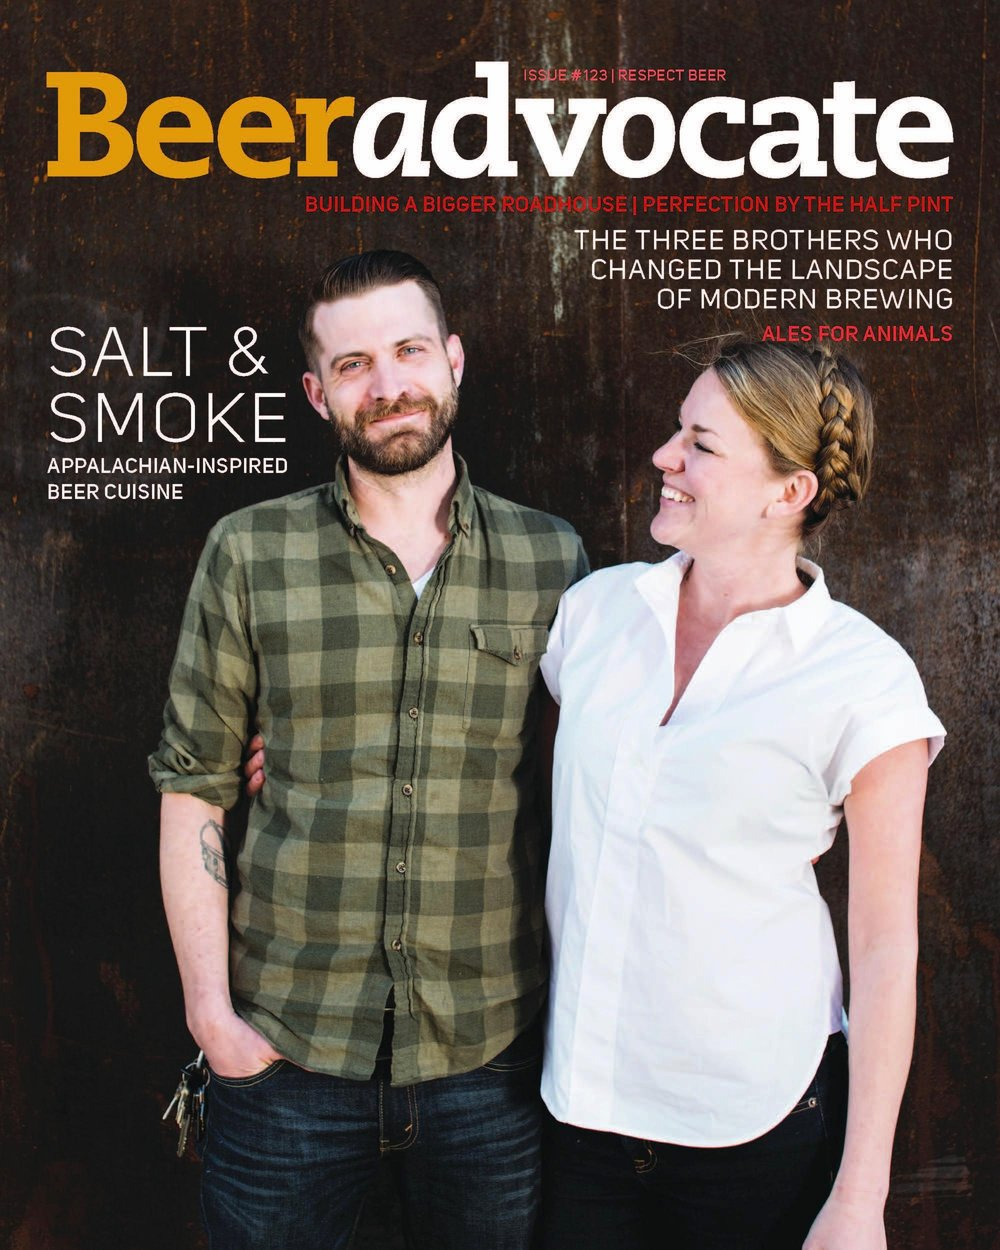 beer advocate jack sorokin cover photo editorial salt and smoke asheville burial beer